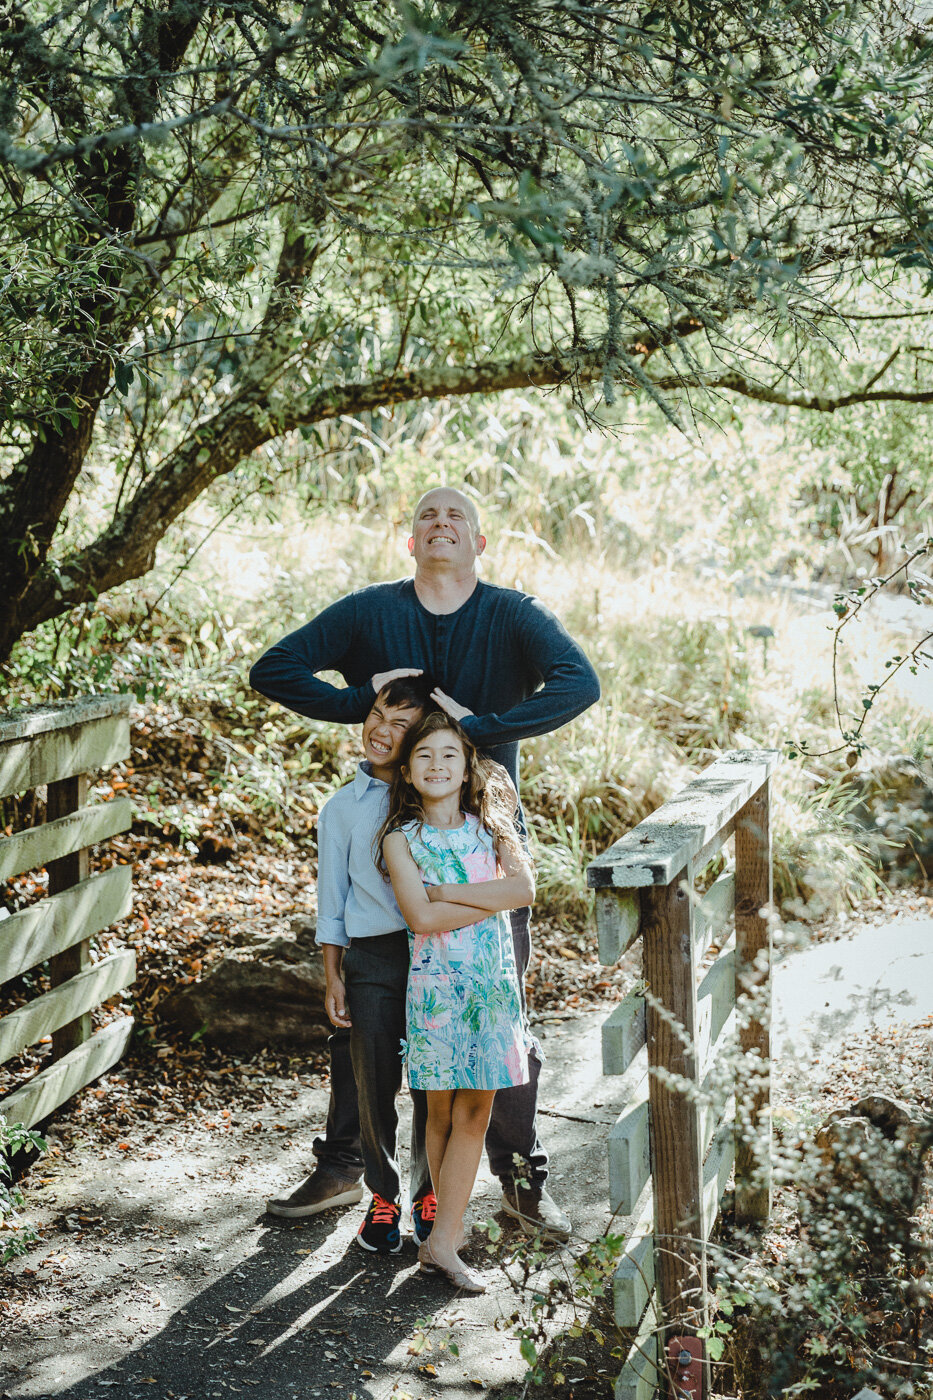 Authentic-connection-family-lifestyle-photography-childhood-san-